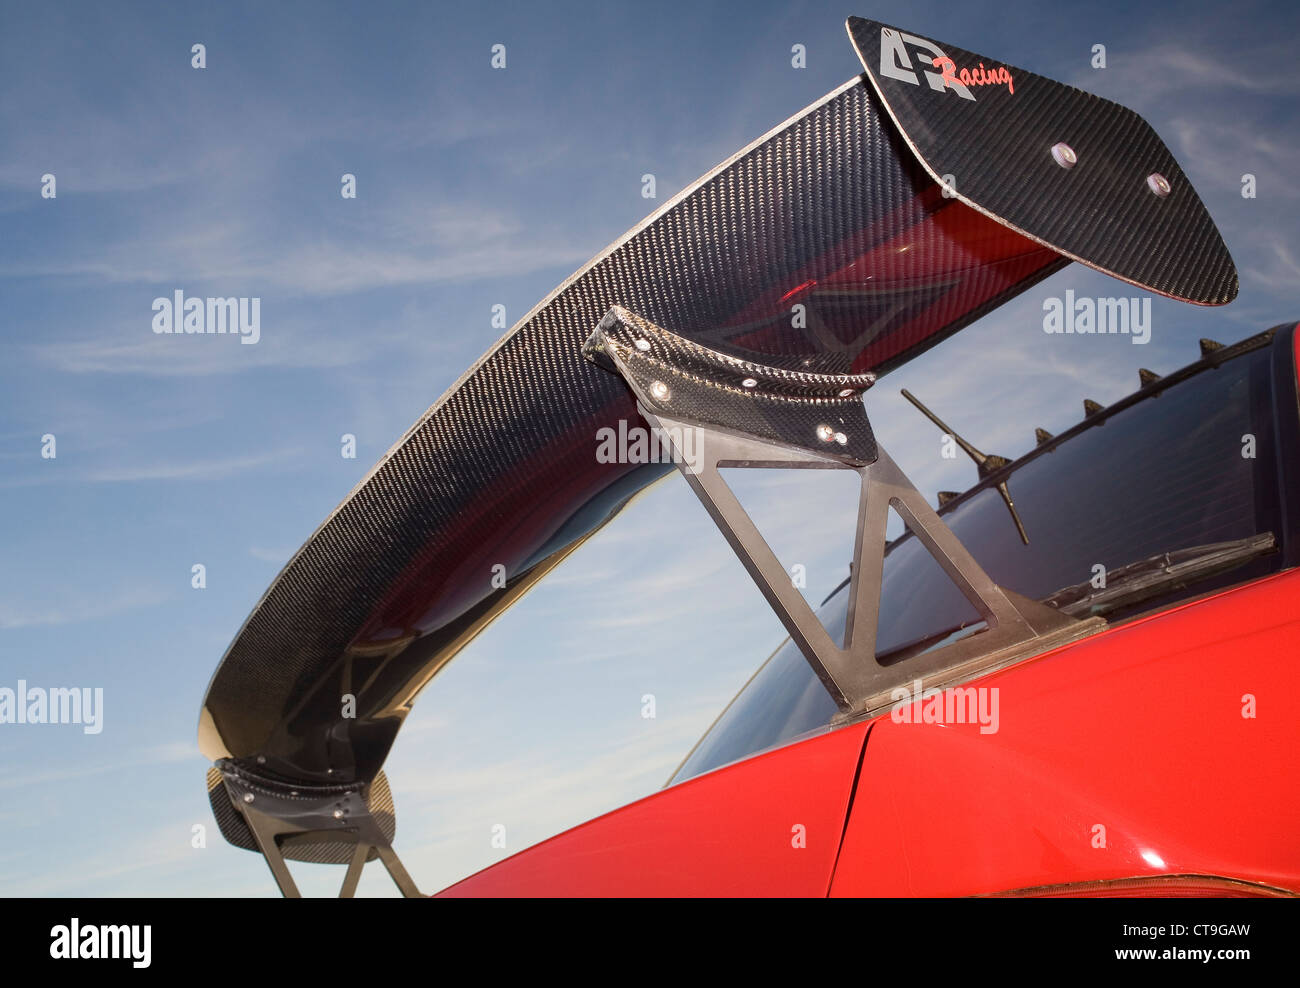 Massive huge aerodynamic carbon fibre wing bolted to the rear of a modified custom boy racer style sports car. - Stock Image